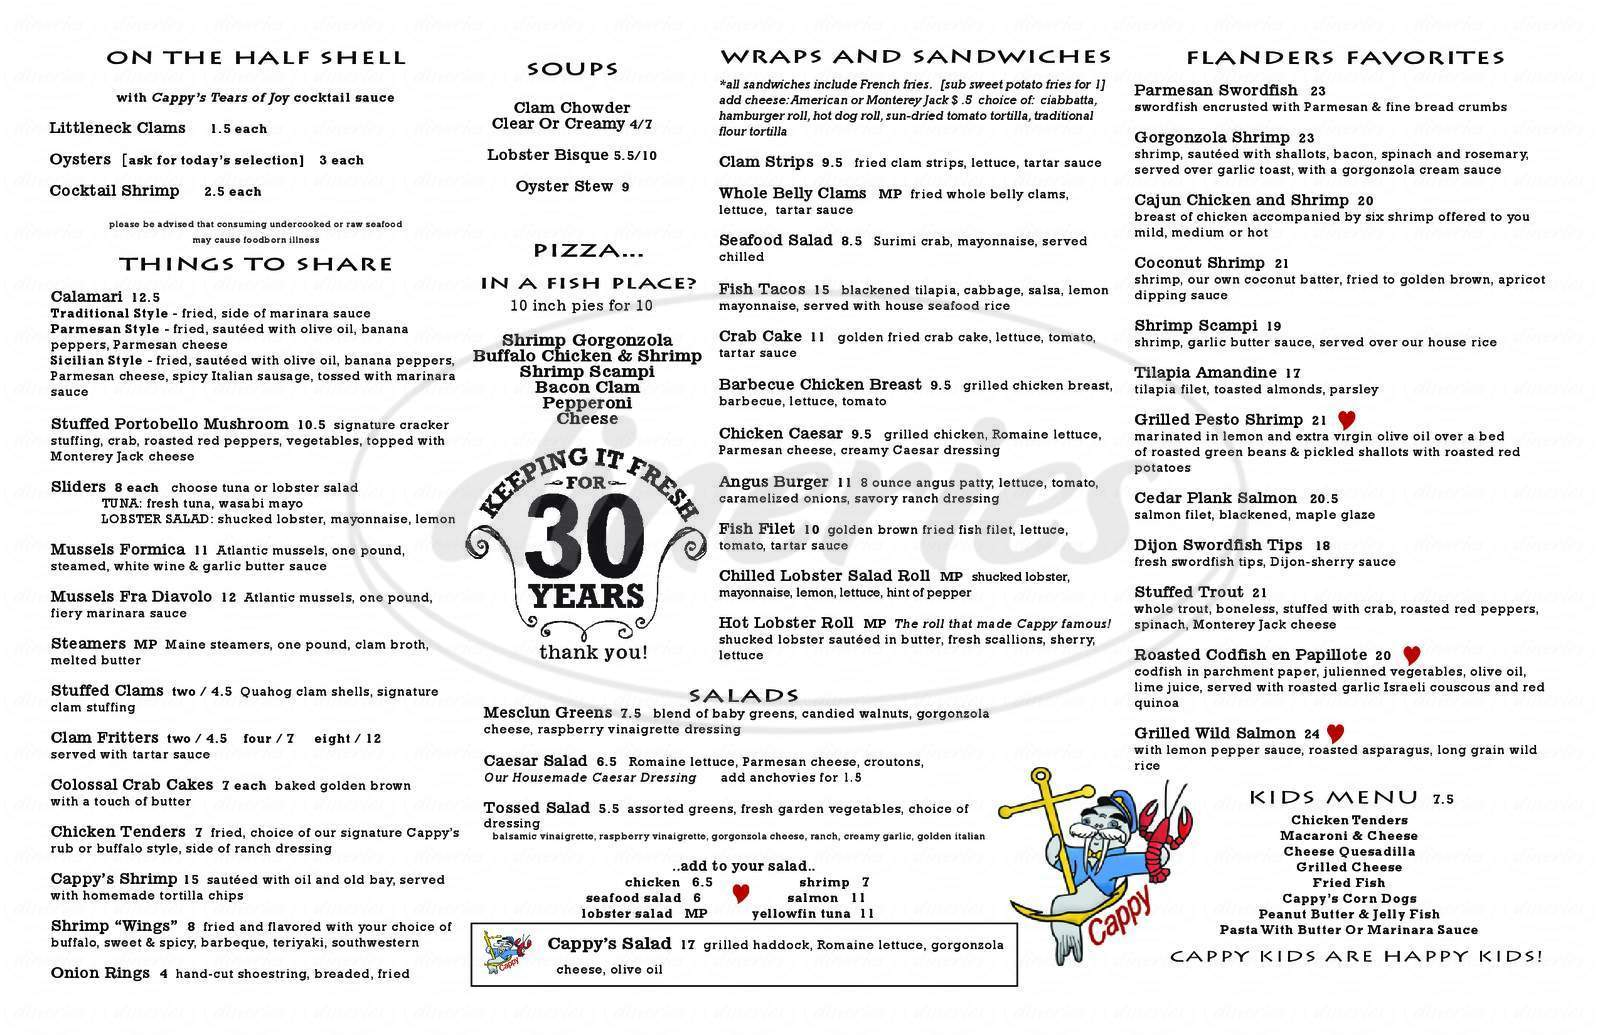 menu for Flanders Fish Market & Restaurant